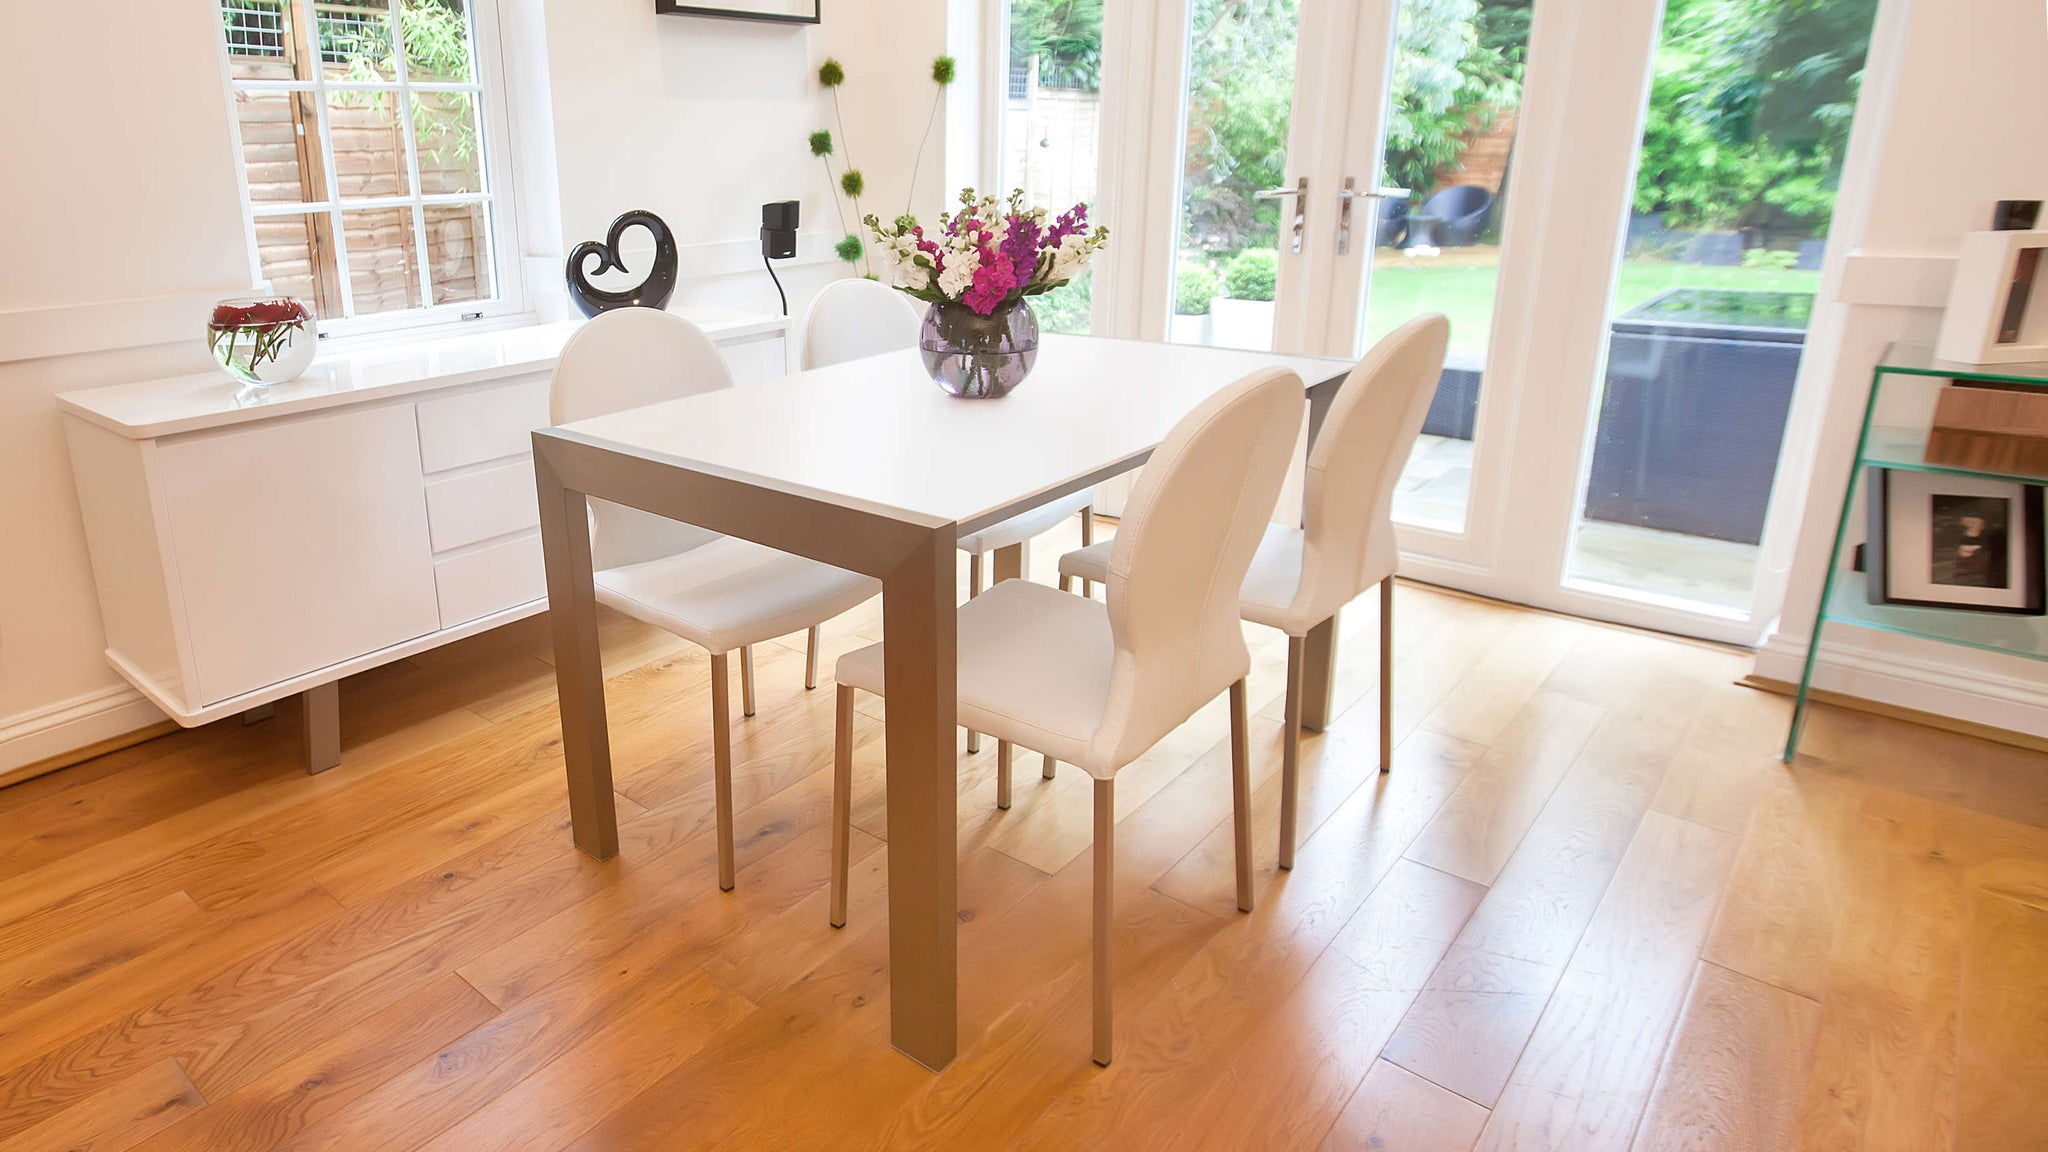 Matt White Dining Table and Modern Dining Chairs